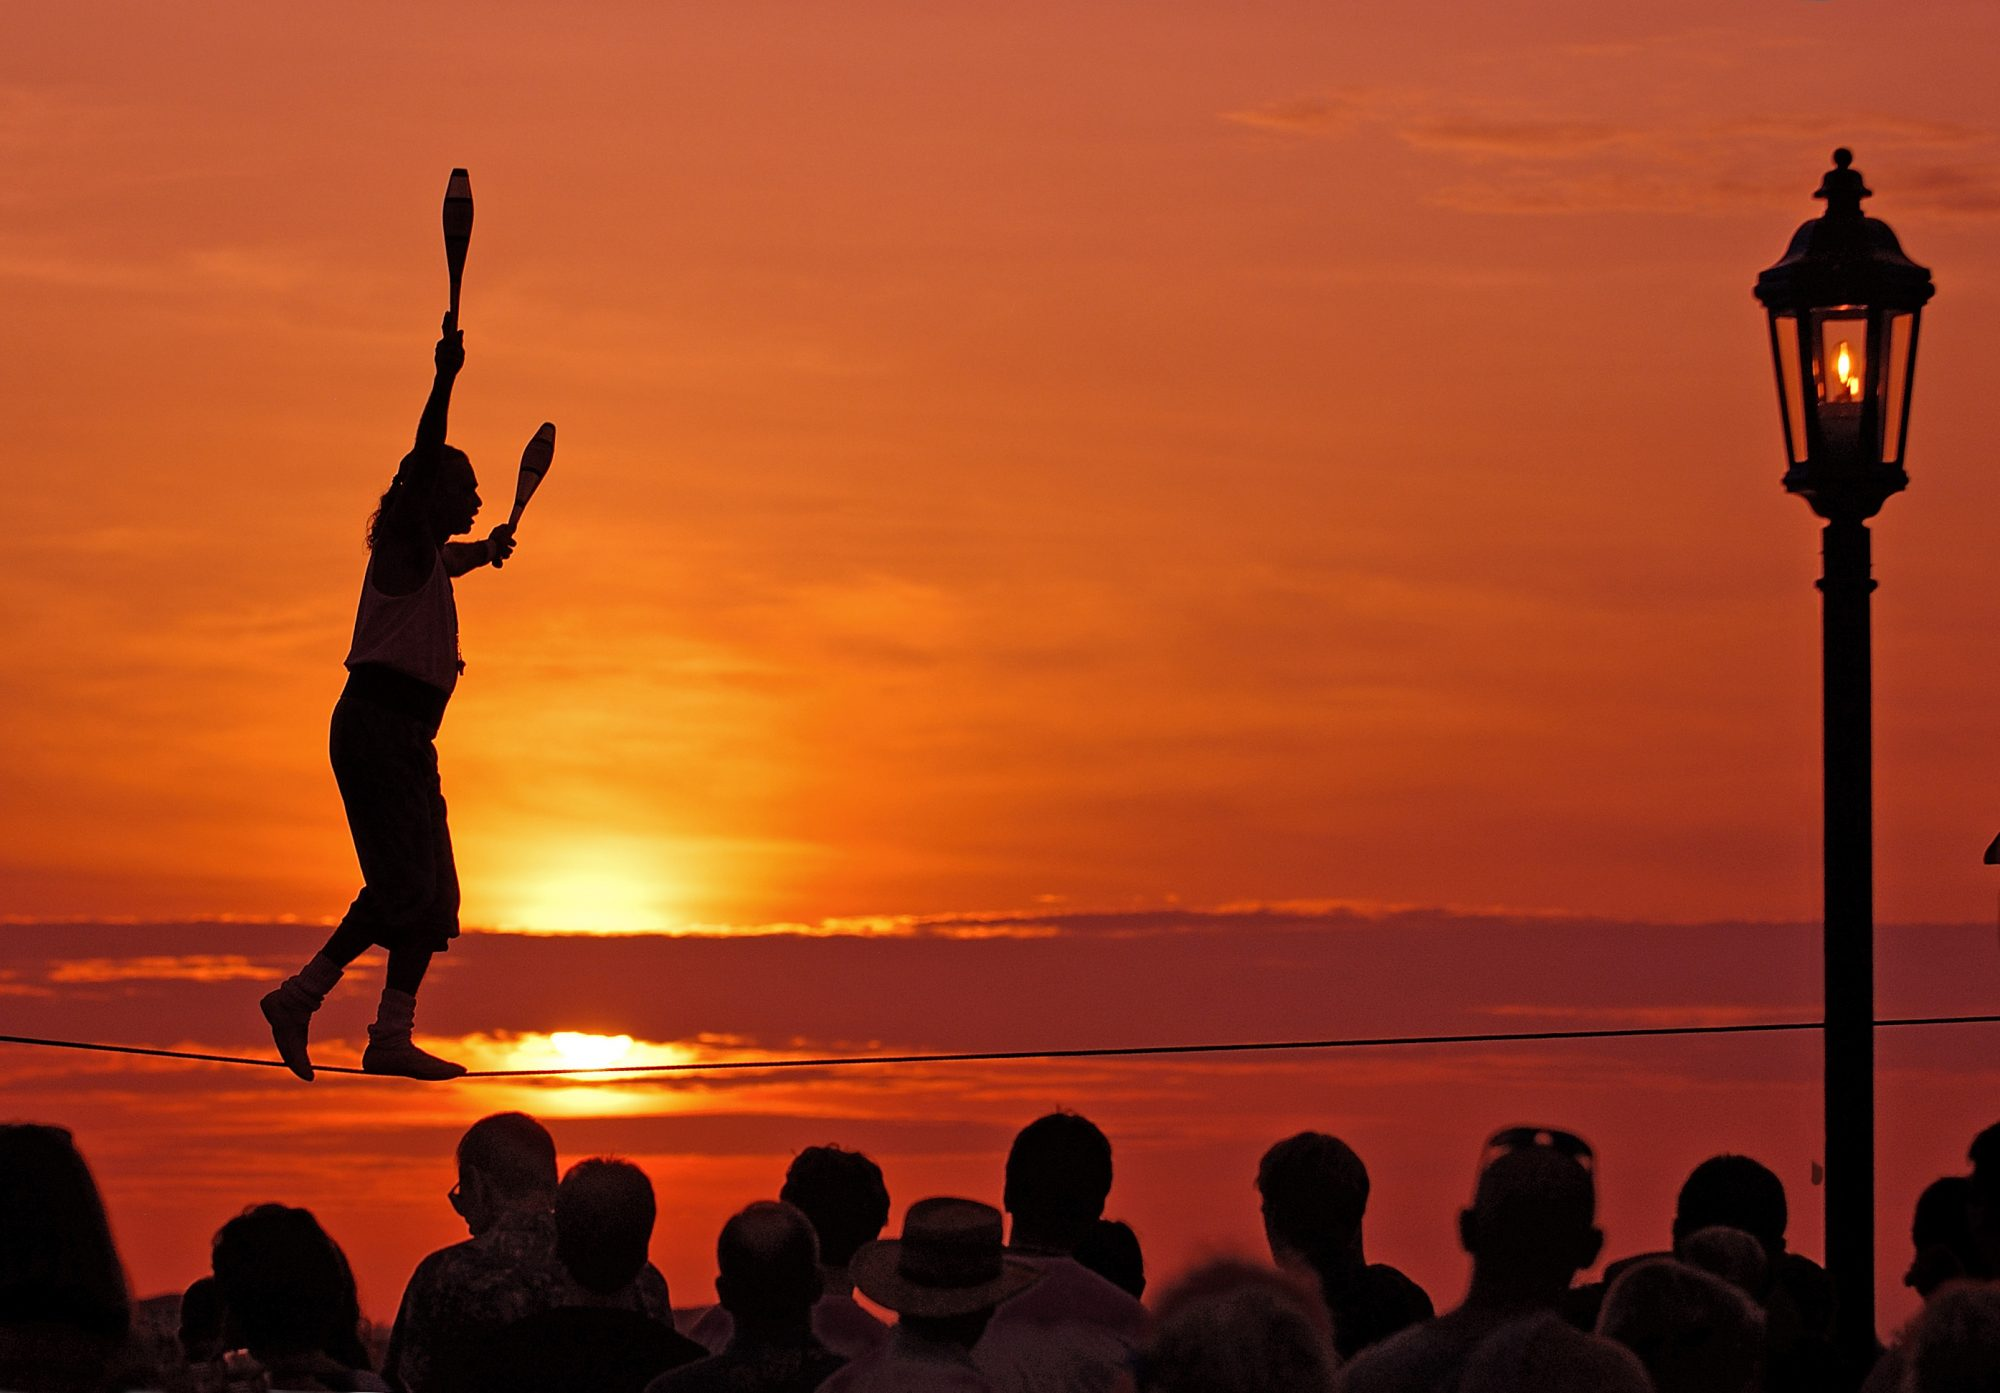 Join the crowds at Mallory Square for a nightly sunset celebration. As the sun sinks into the sea, you'll find acrobats, guitarists, sword swallowers and entertainers like Will Soto performing his juggling high wire act.